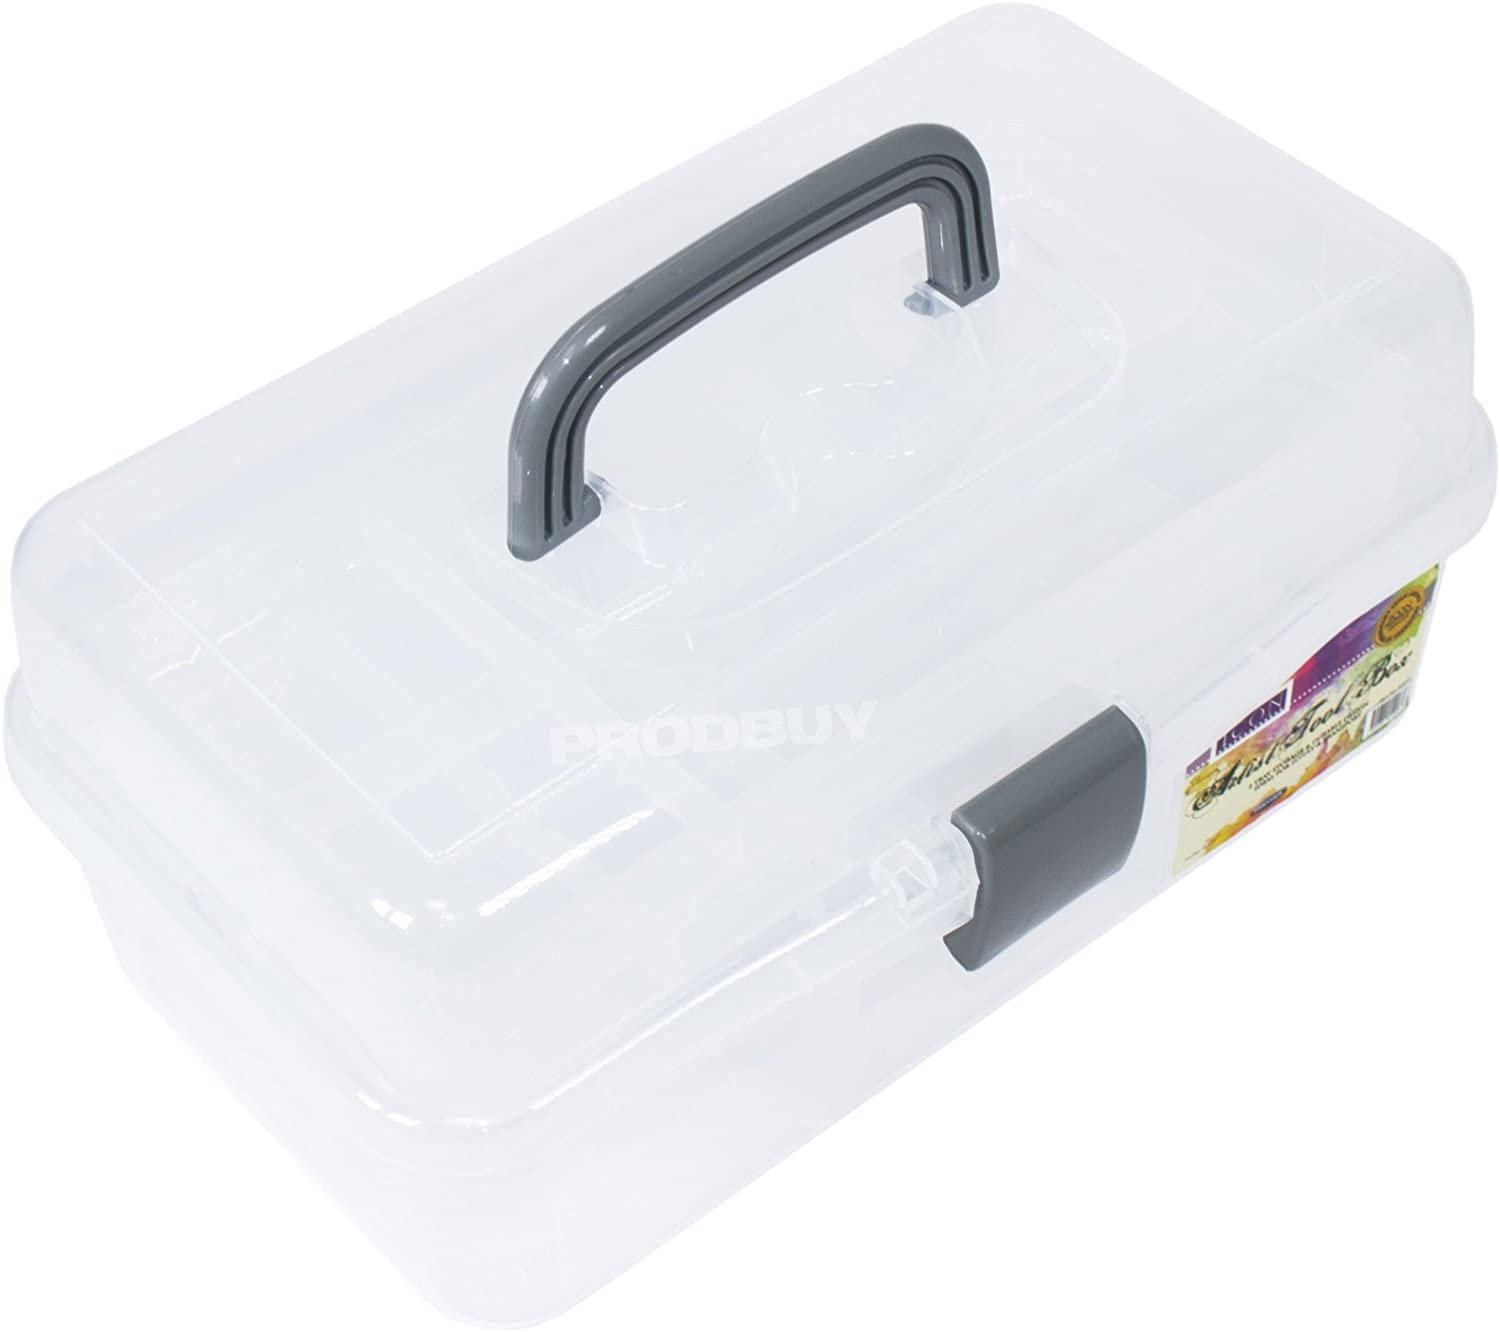 Artist's Tool Box Clear Plastic Carry Max 70% OFF Pencil Case Gifts Art Scho Brush